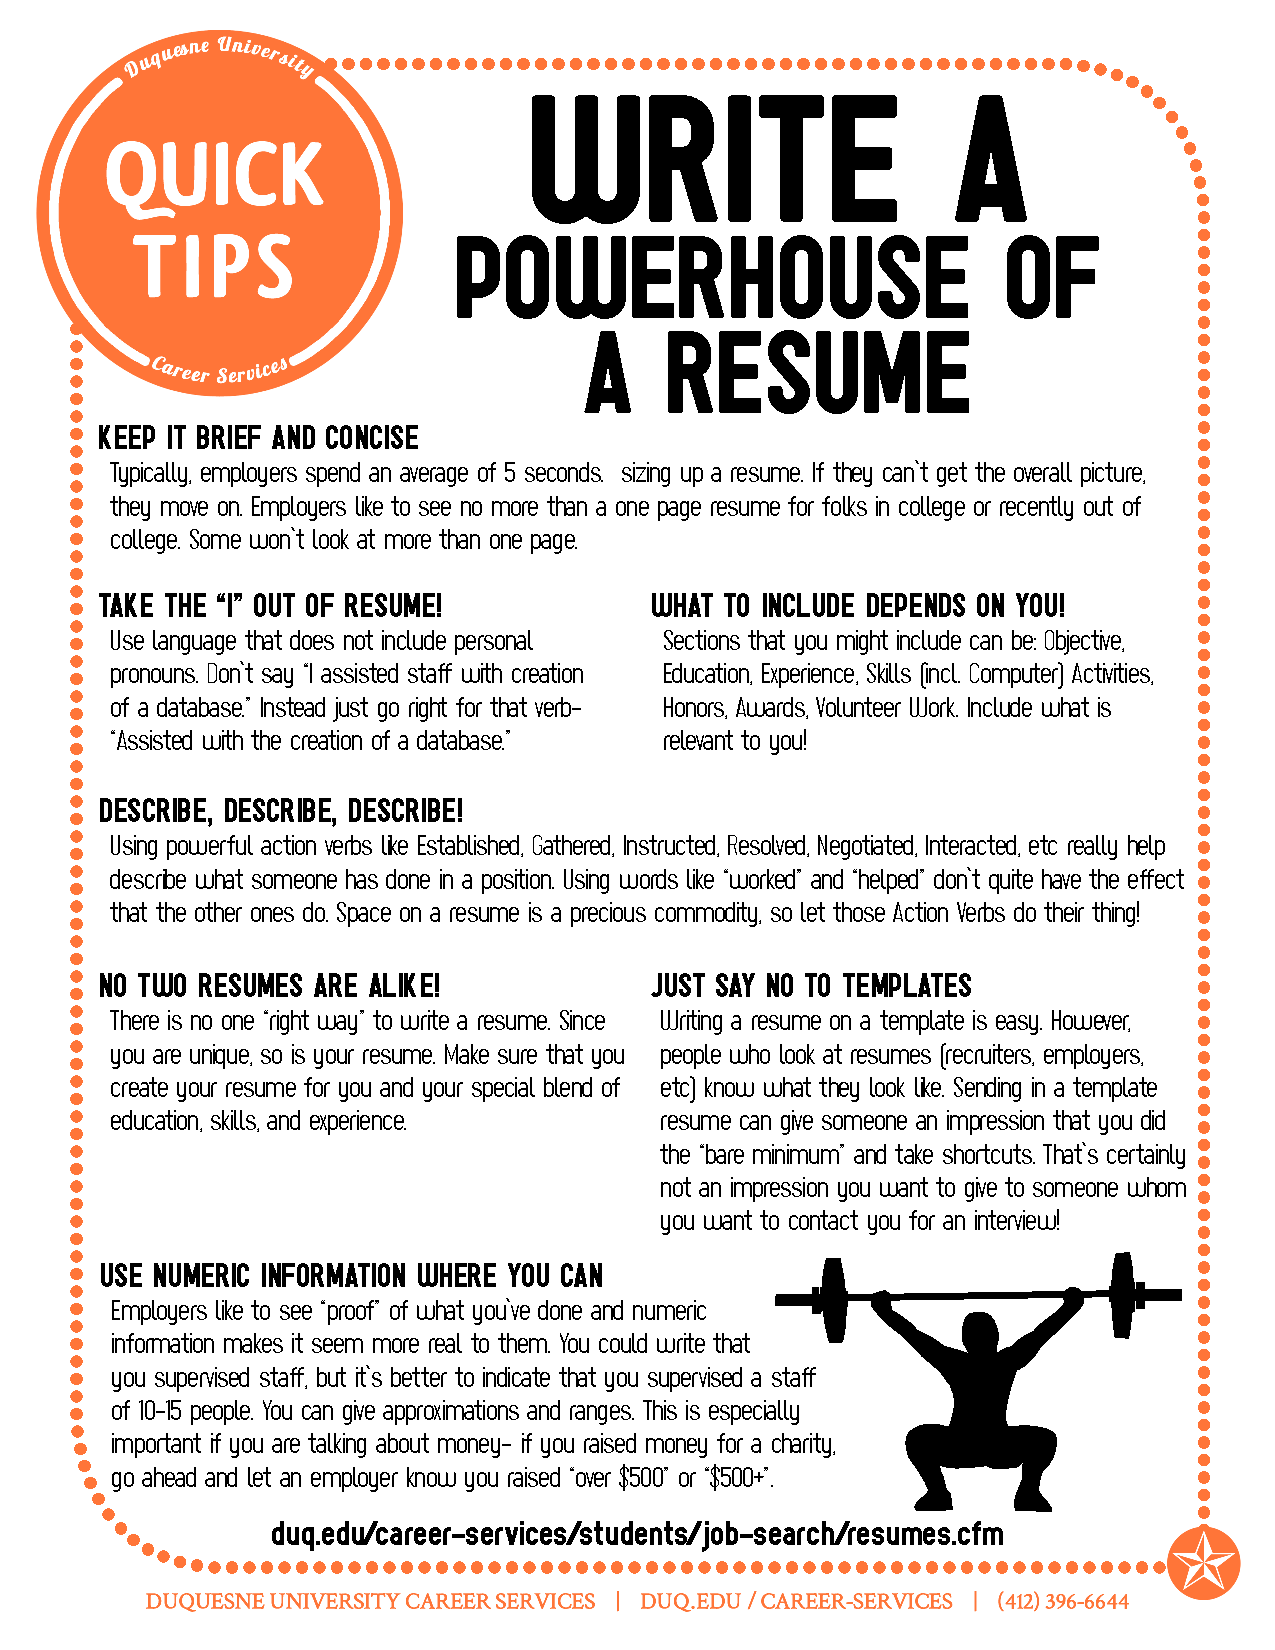 Powerful Resume Tips. Easy Fixes To Improve And Update Your Resume.